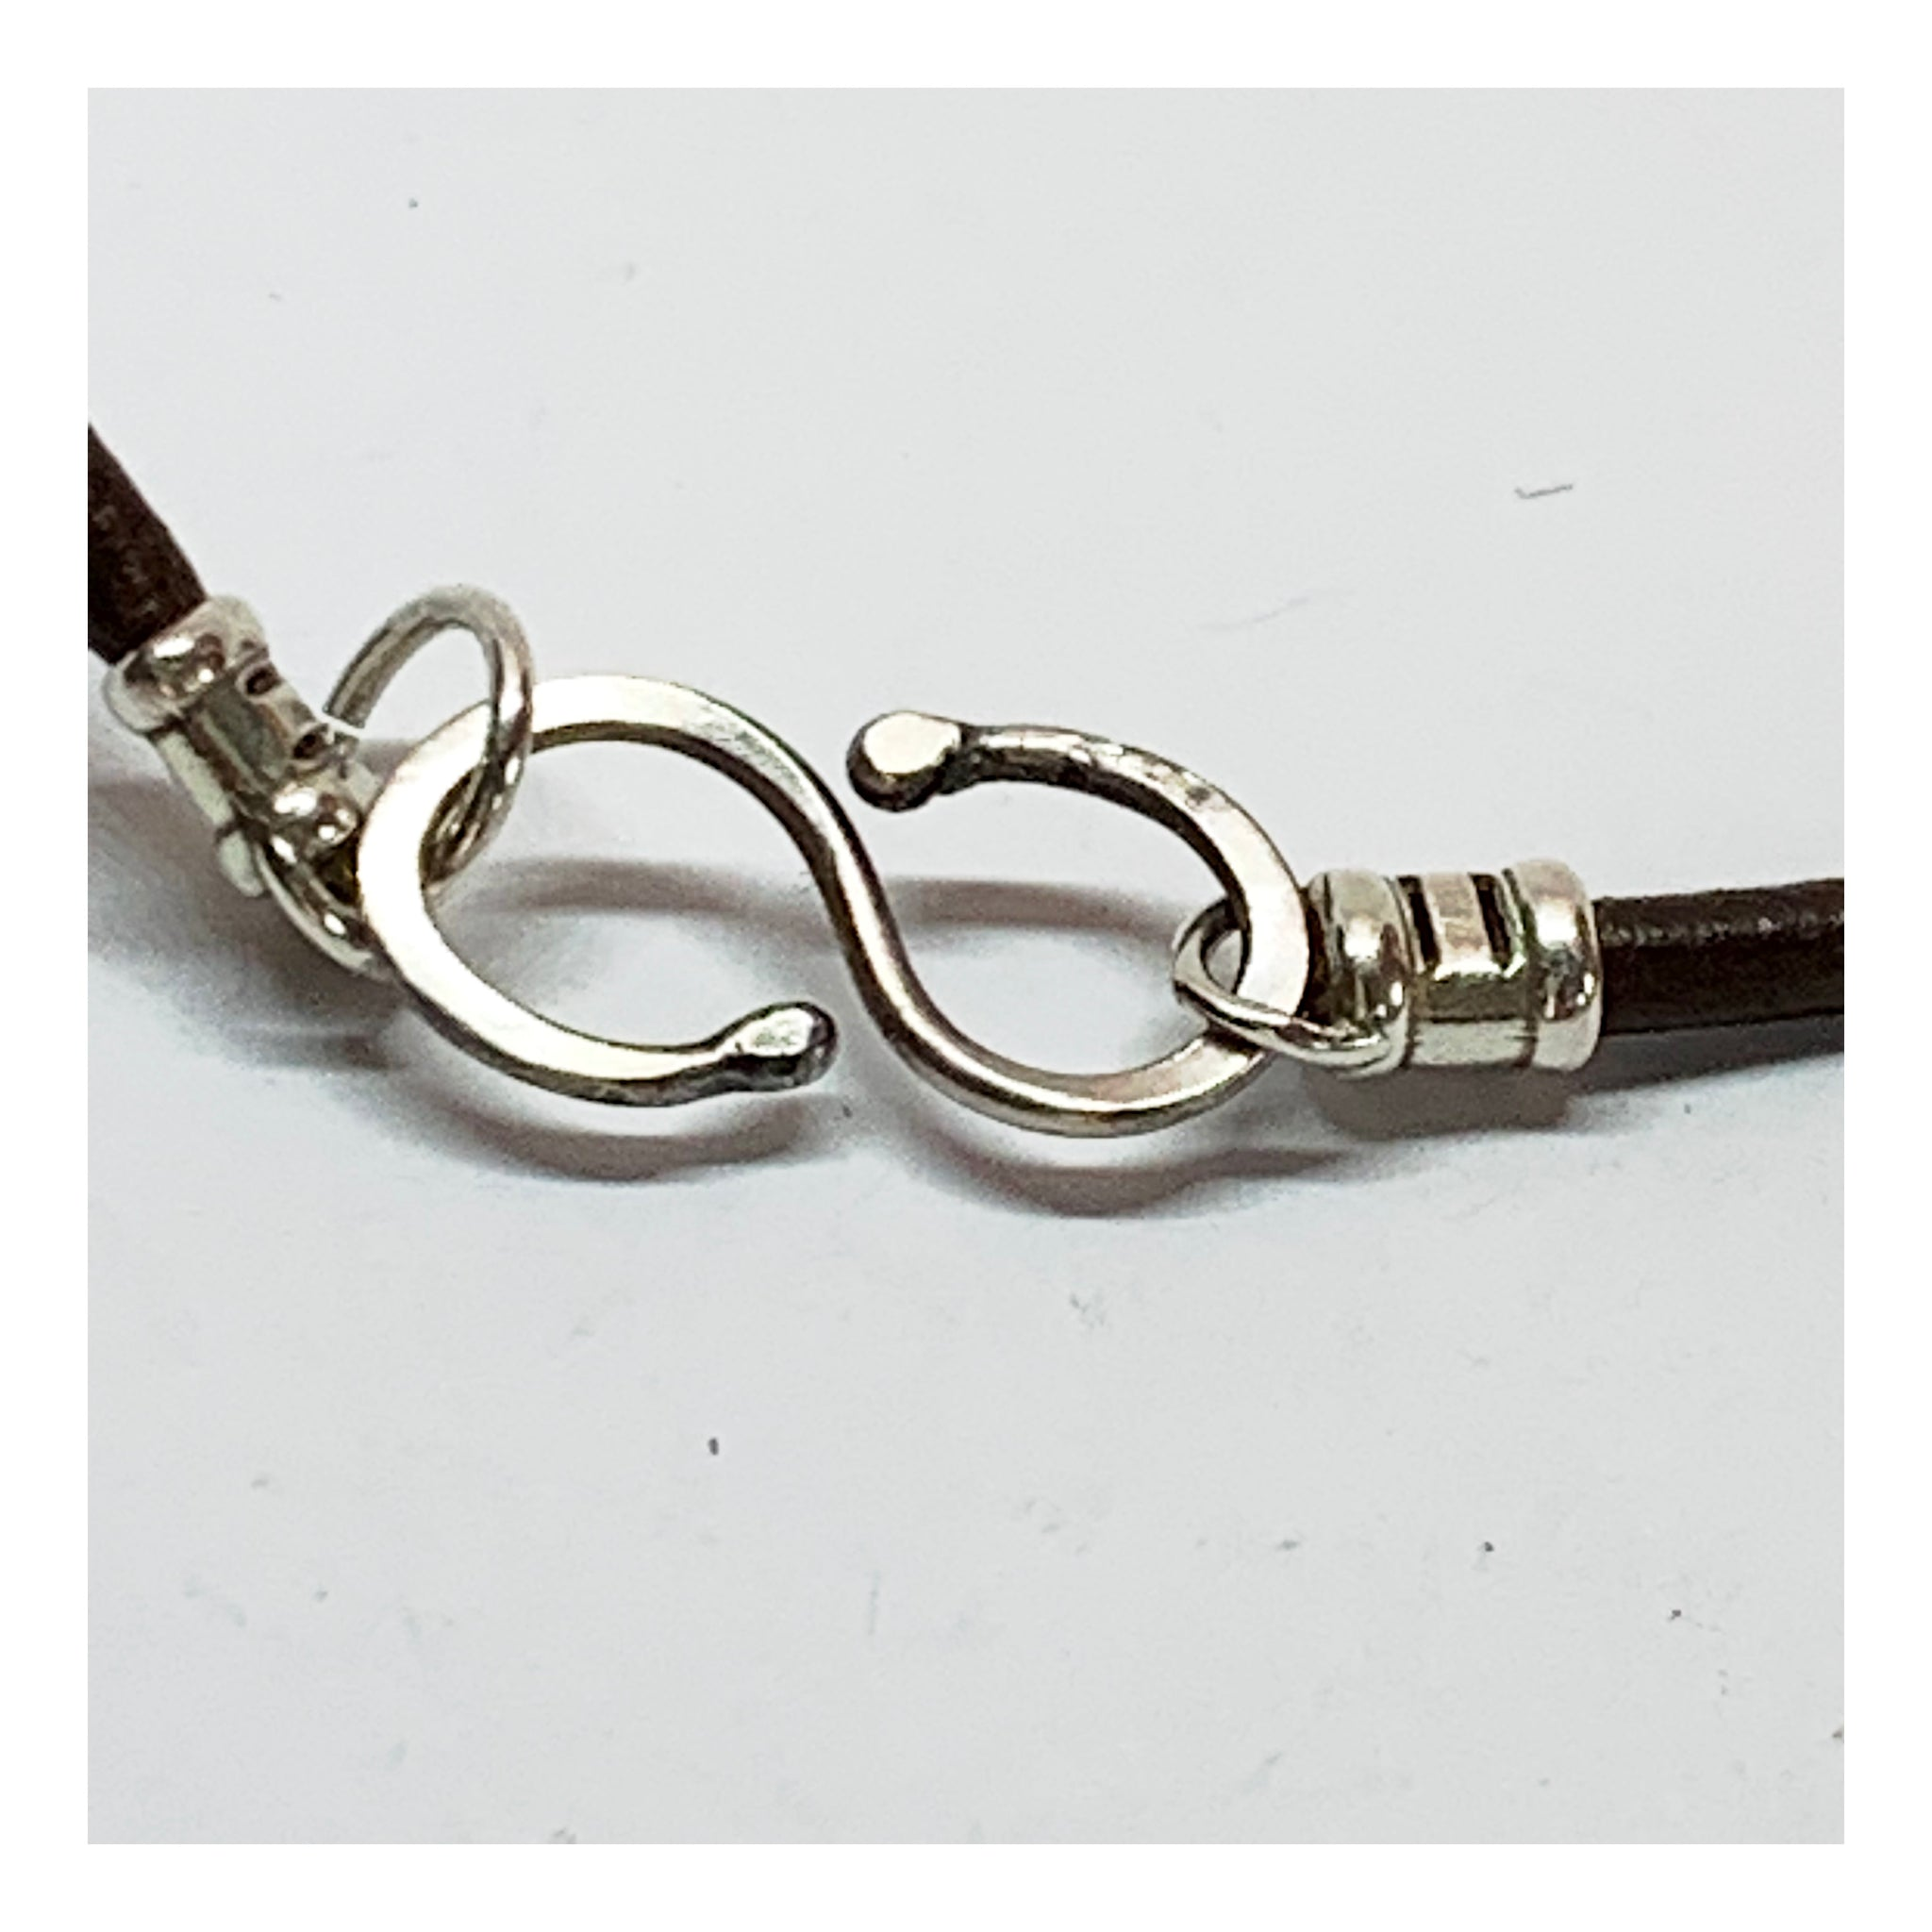 Extra Long Sterling Silver and Leather Necklace With Unusual Charm Pendant